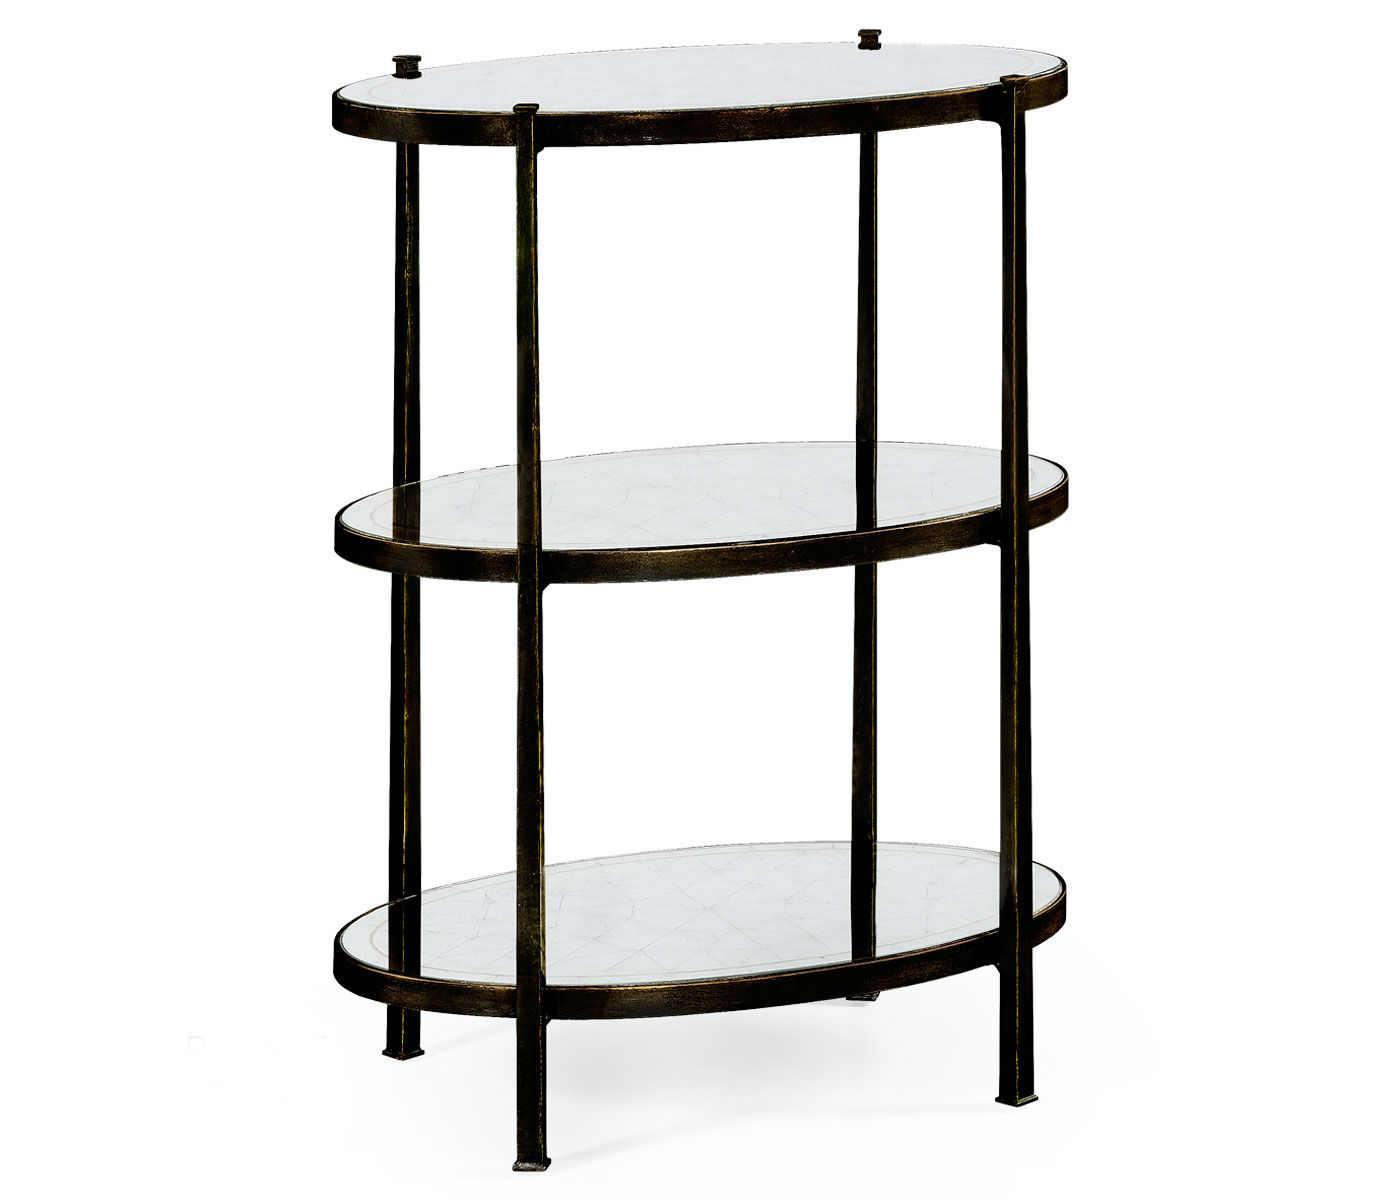 table combo marble ideas mesh room small shades folding for legs metal kmart square round outdoor bedroom bedside industrial black designs decor terrazzo design scandi lamp tures